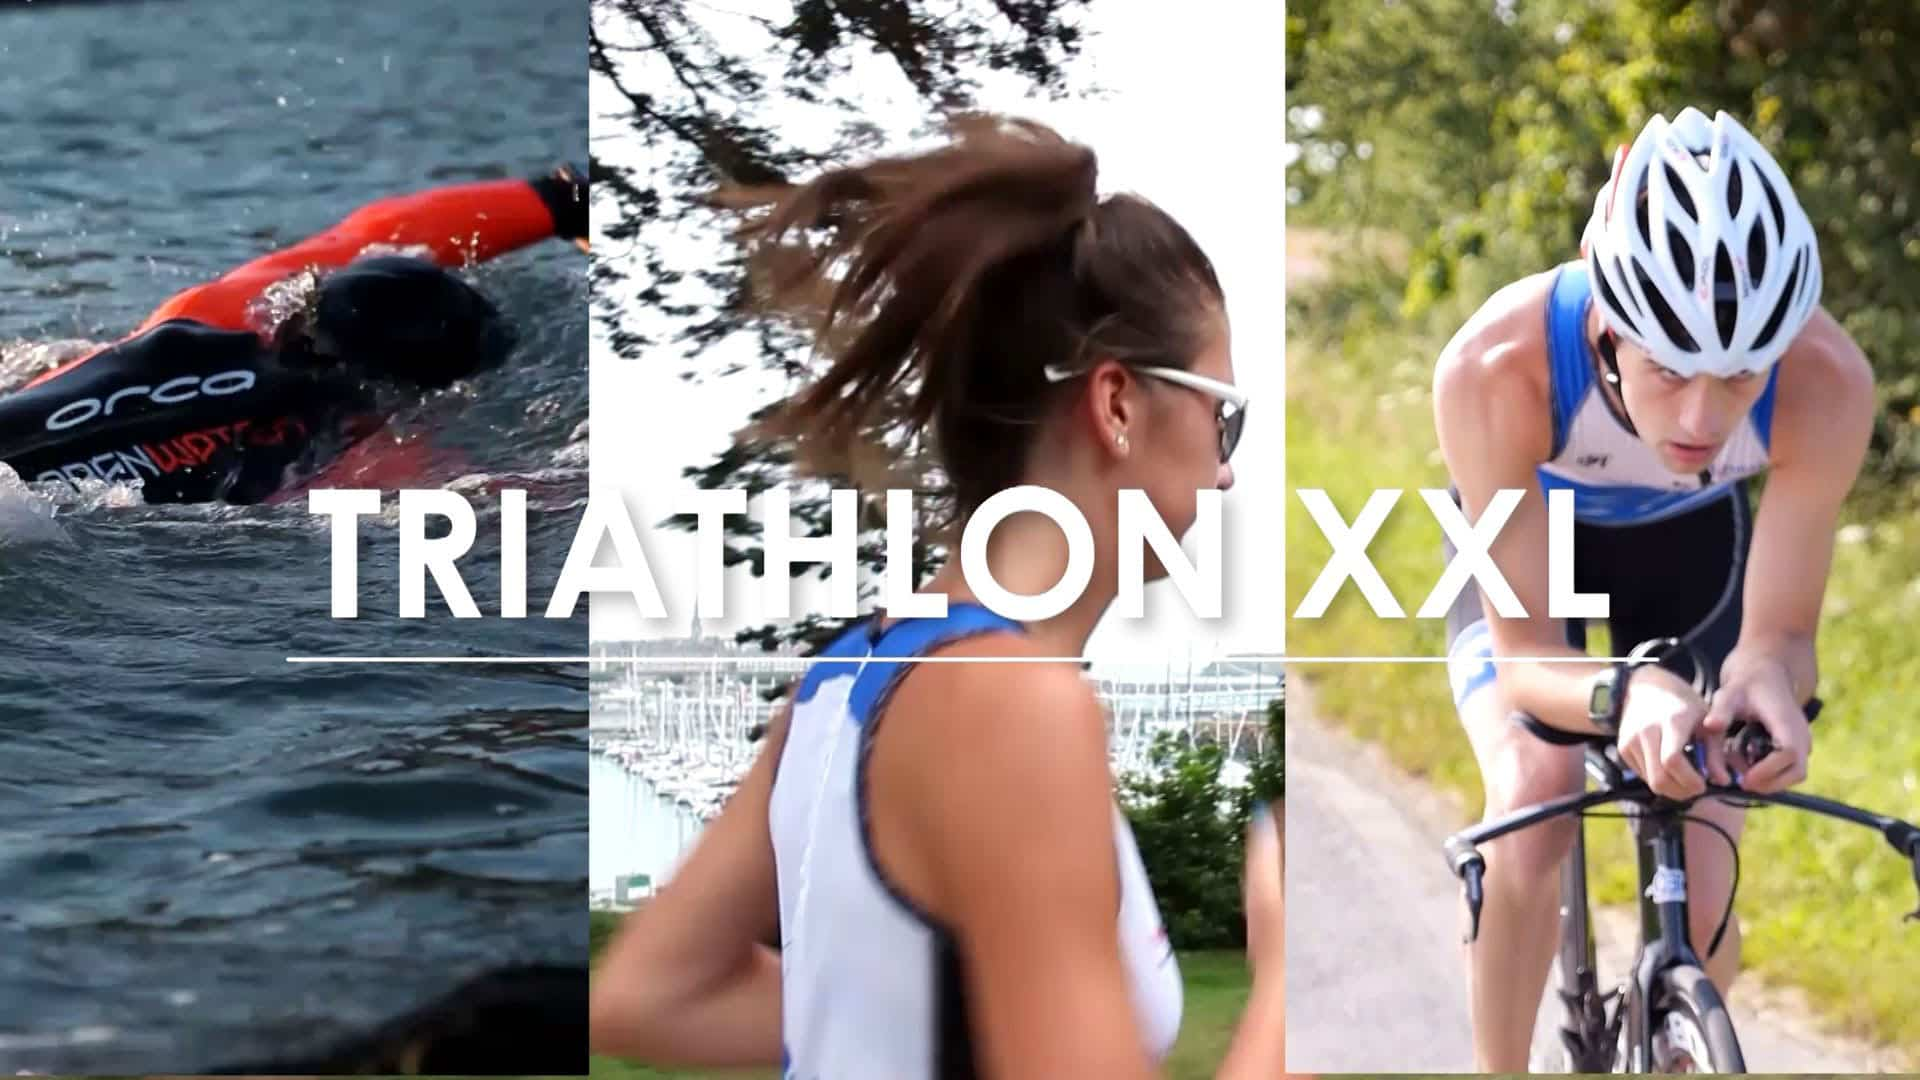 ironcorsaire : triathlon XXL